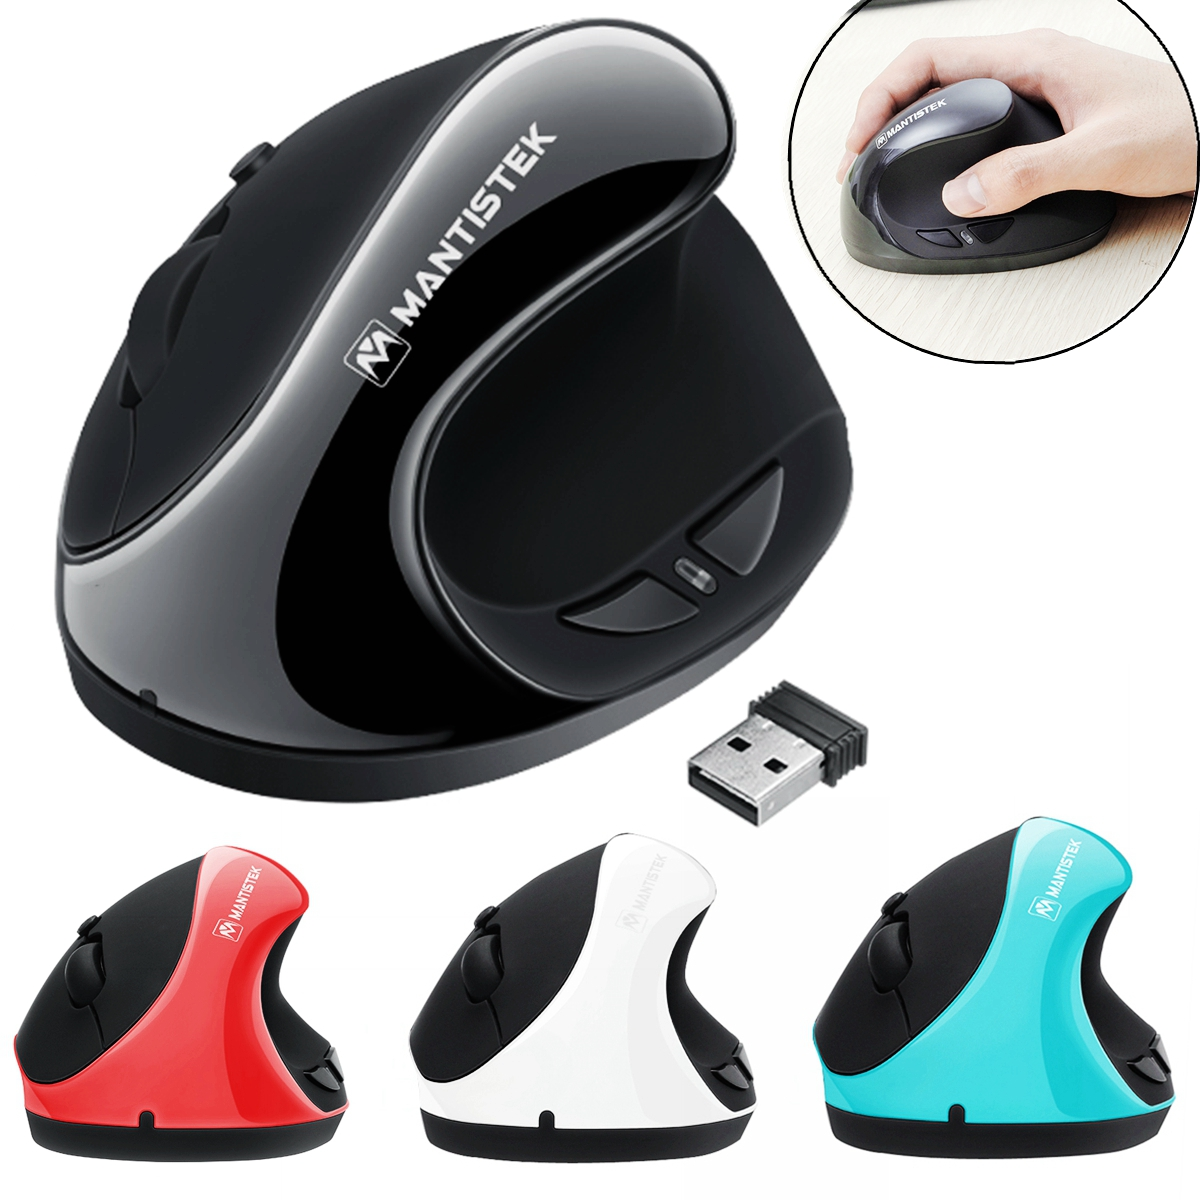 MantisTek VM1 2.4GHz 1600DPI Wireless Bluetooth USB Optical Ergonomic Vertical Mouse Adjustable For PC Laptop Computer